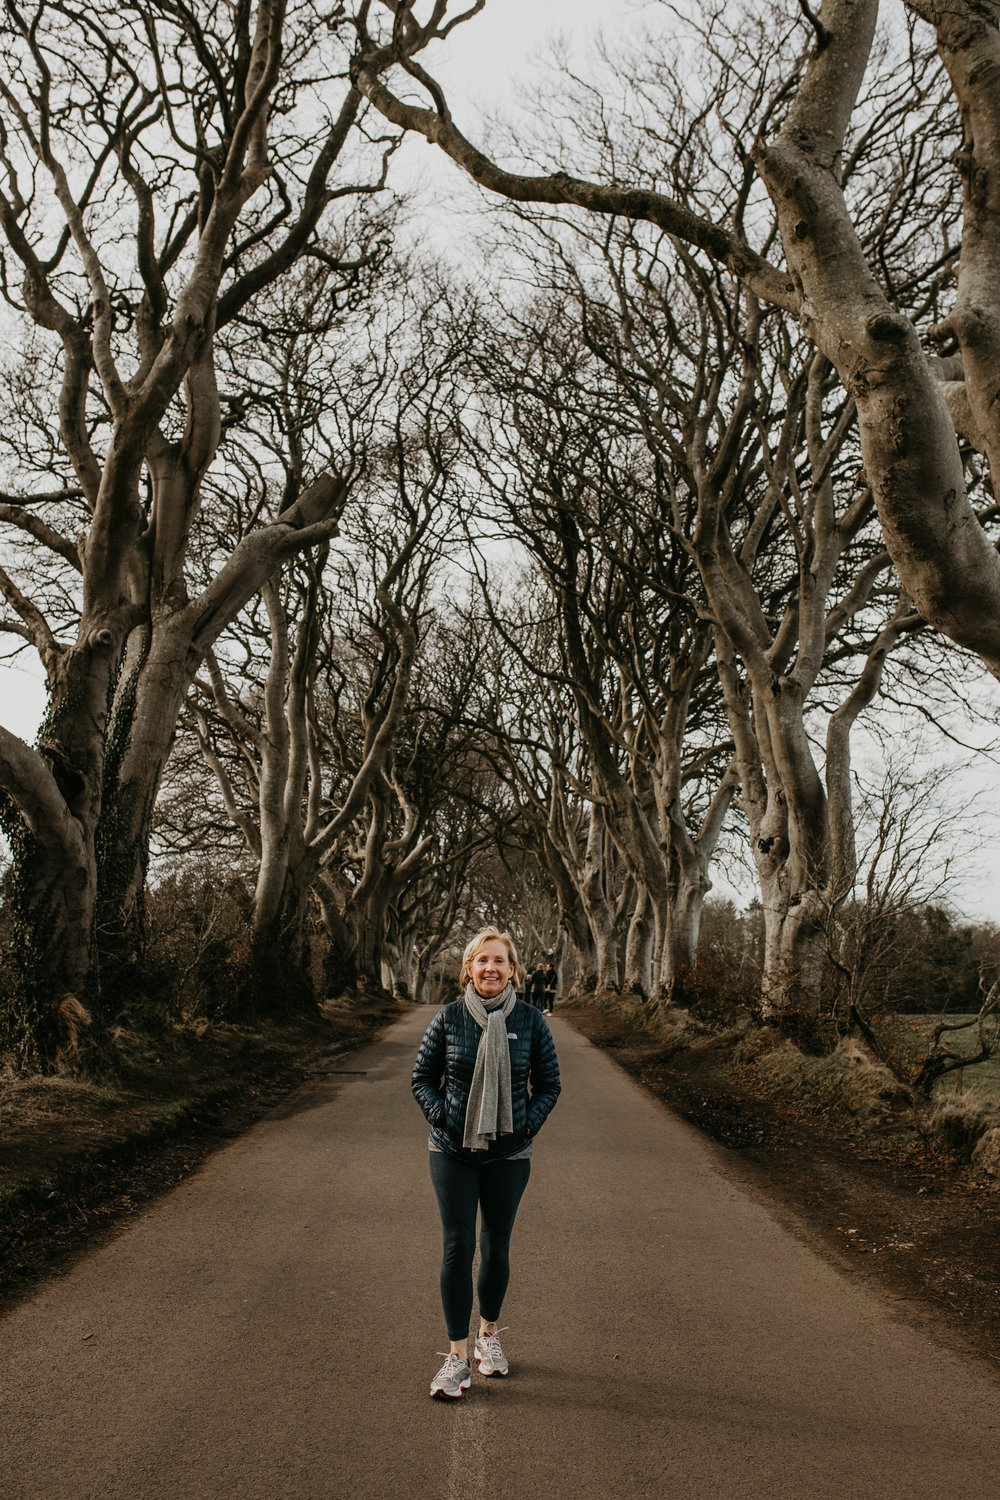 nicole-daacke-photography-ireland-destination-elopement-wedding-photographer-destination-wedding-irish-castle-wedding-intimate-ireland-wedding-photographer-ireland-elopement-photographer-dublin-howth-belfast-antrim-destination-wedding-photos-51.jpg